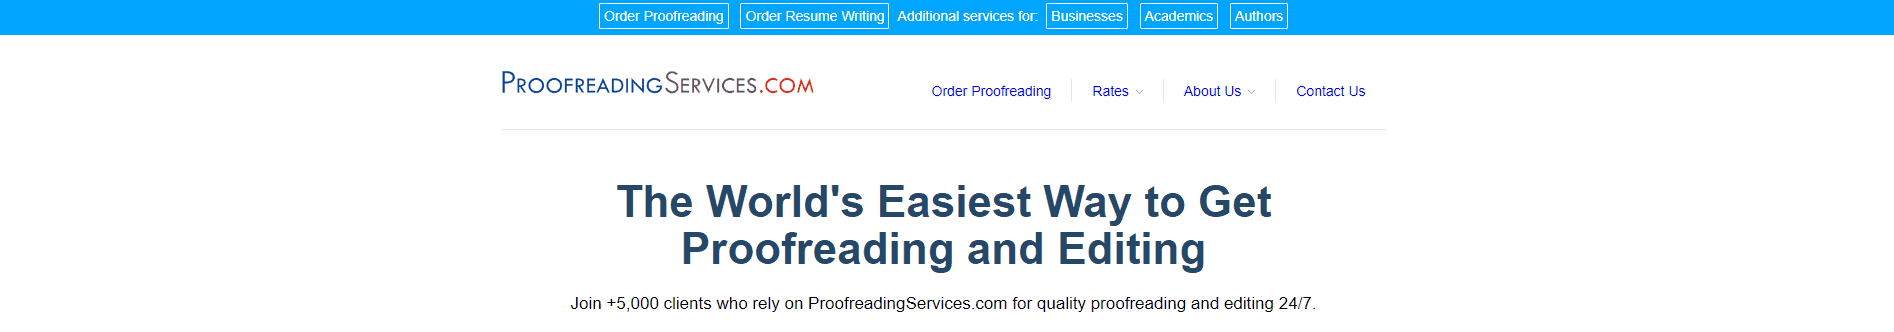 20 Online Proofreading Jobs For Beginners (make up to $50